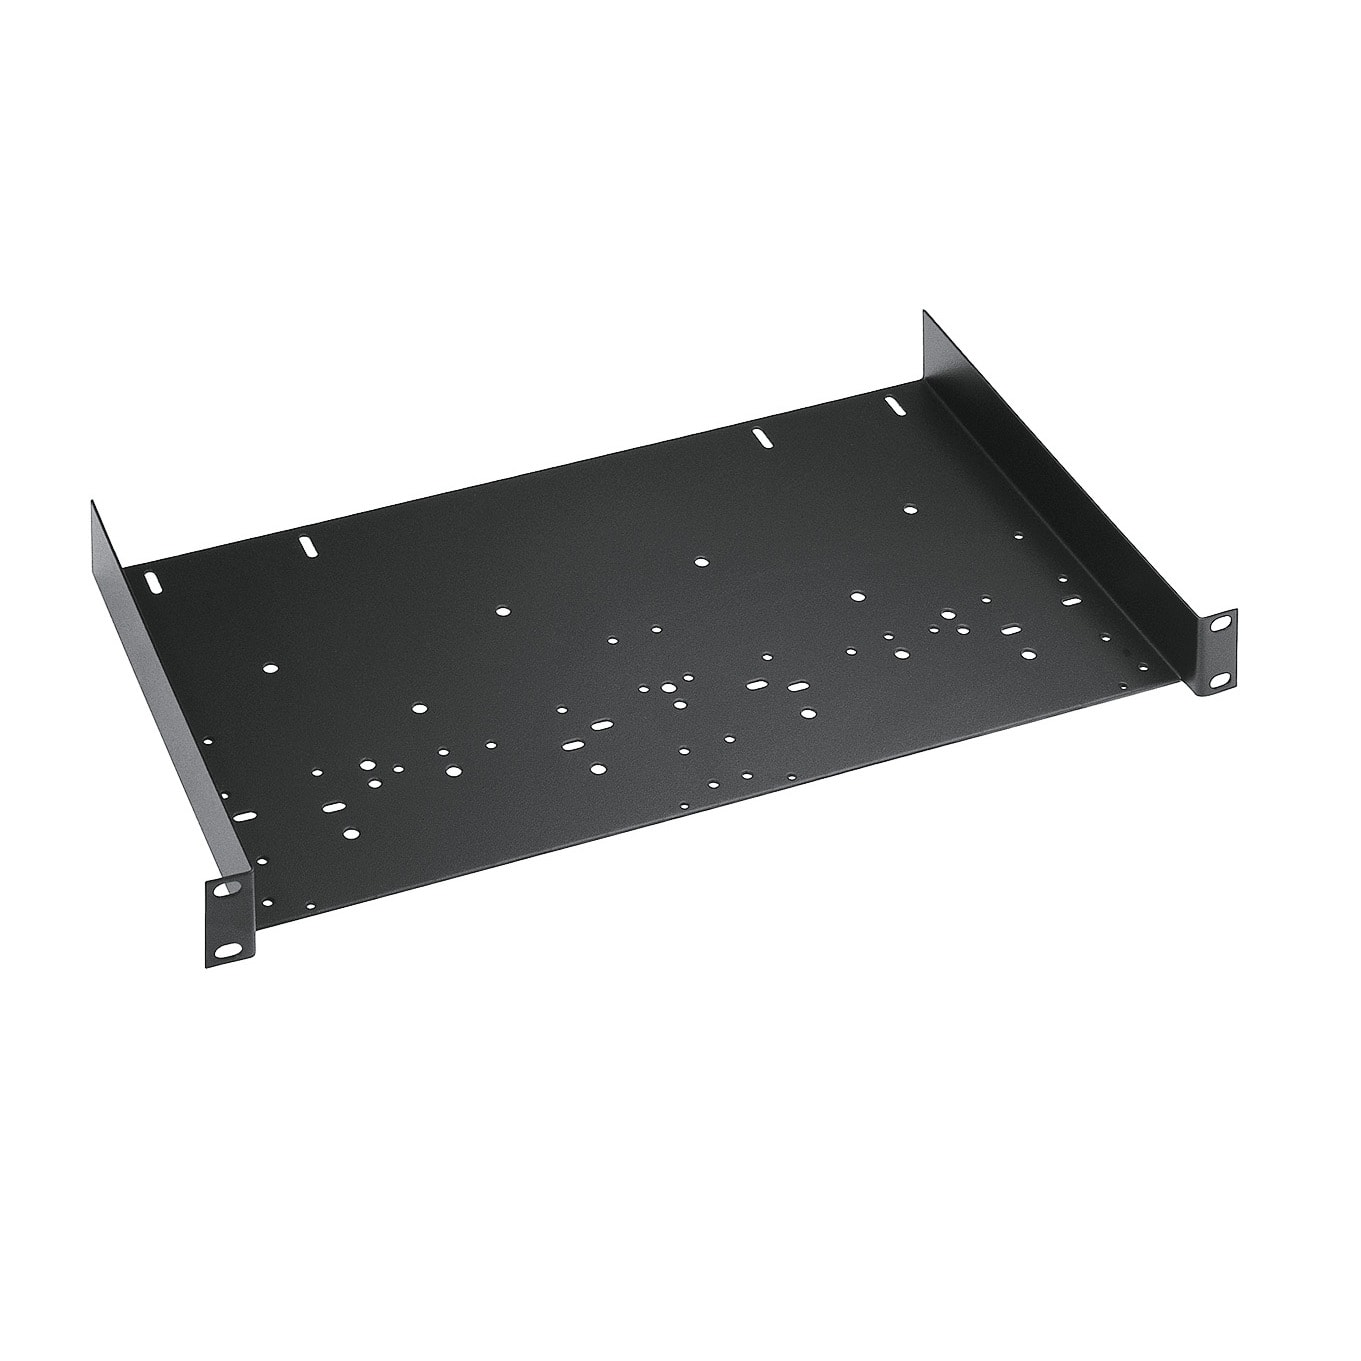 "KM49035 - 19"" fixed shelf - 240mm depth"